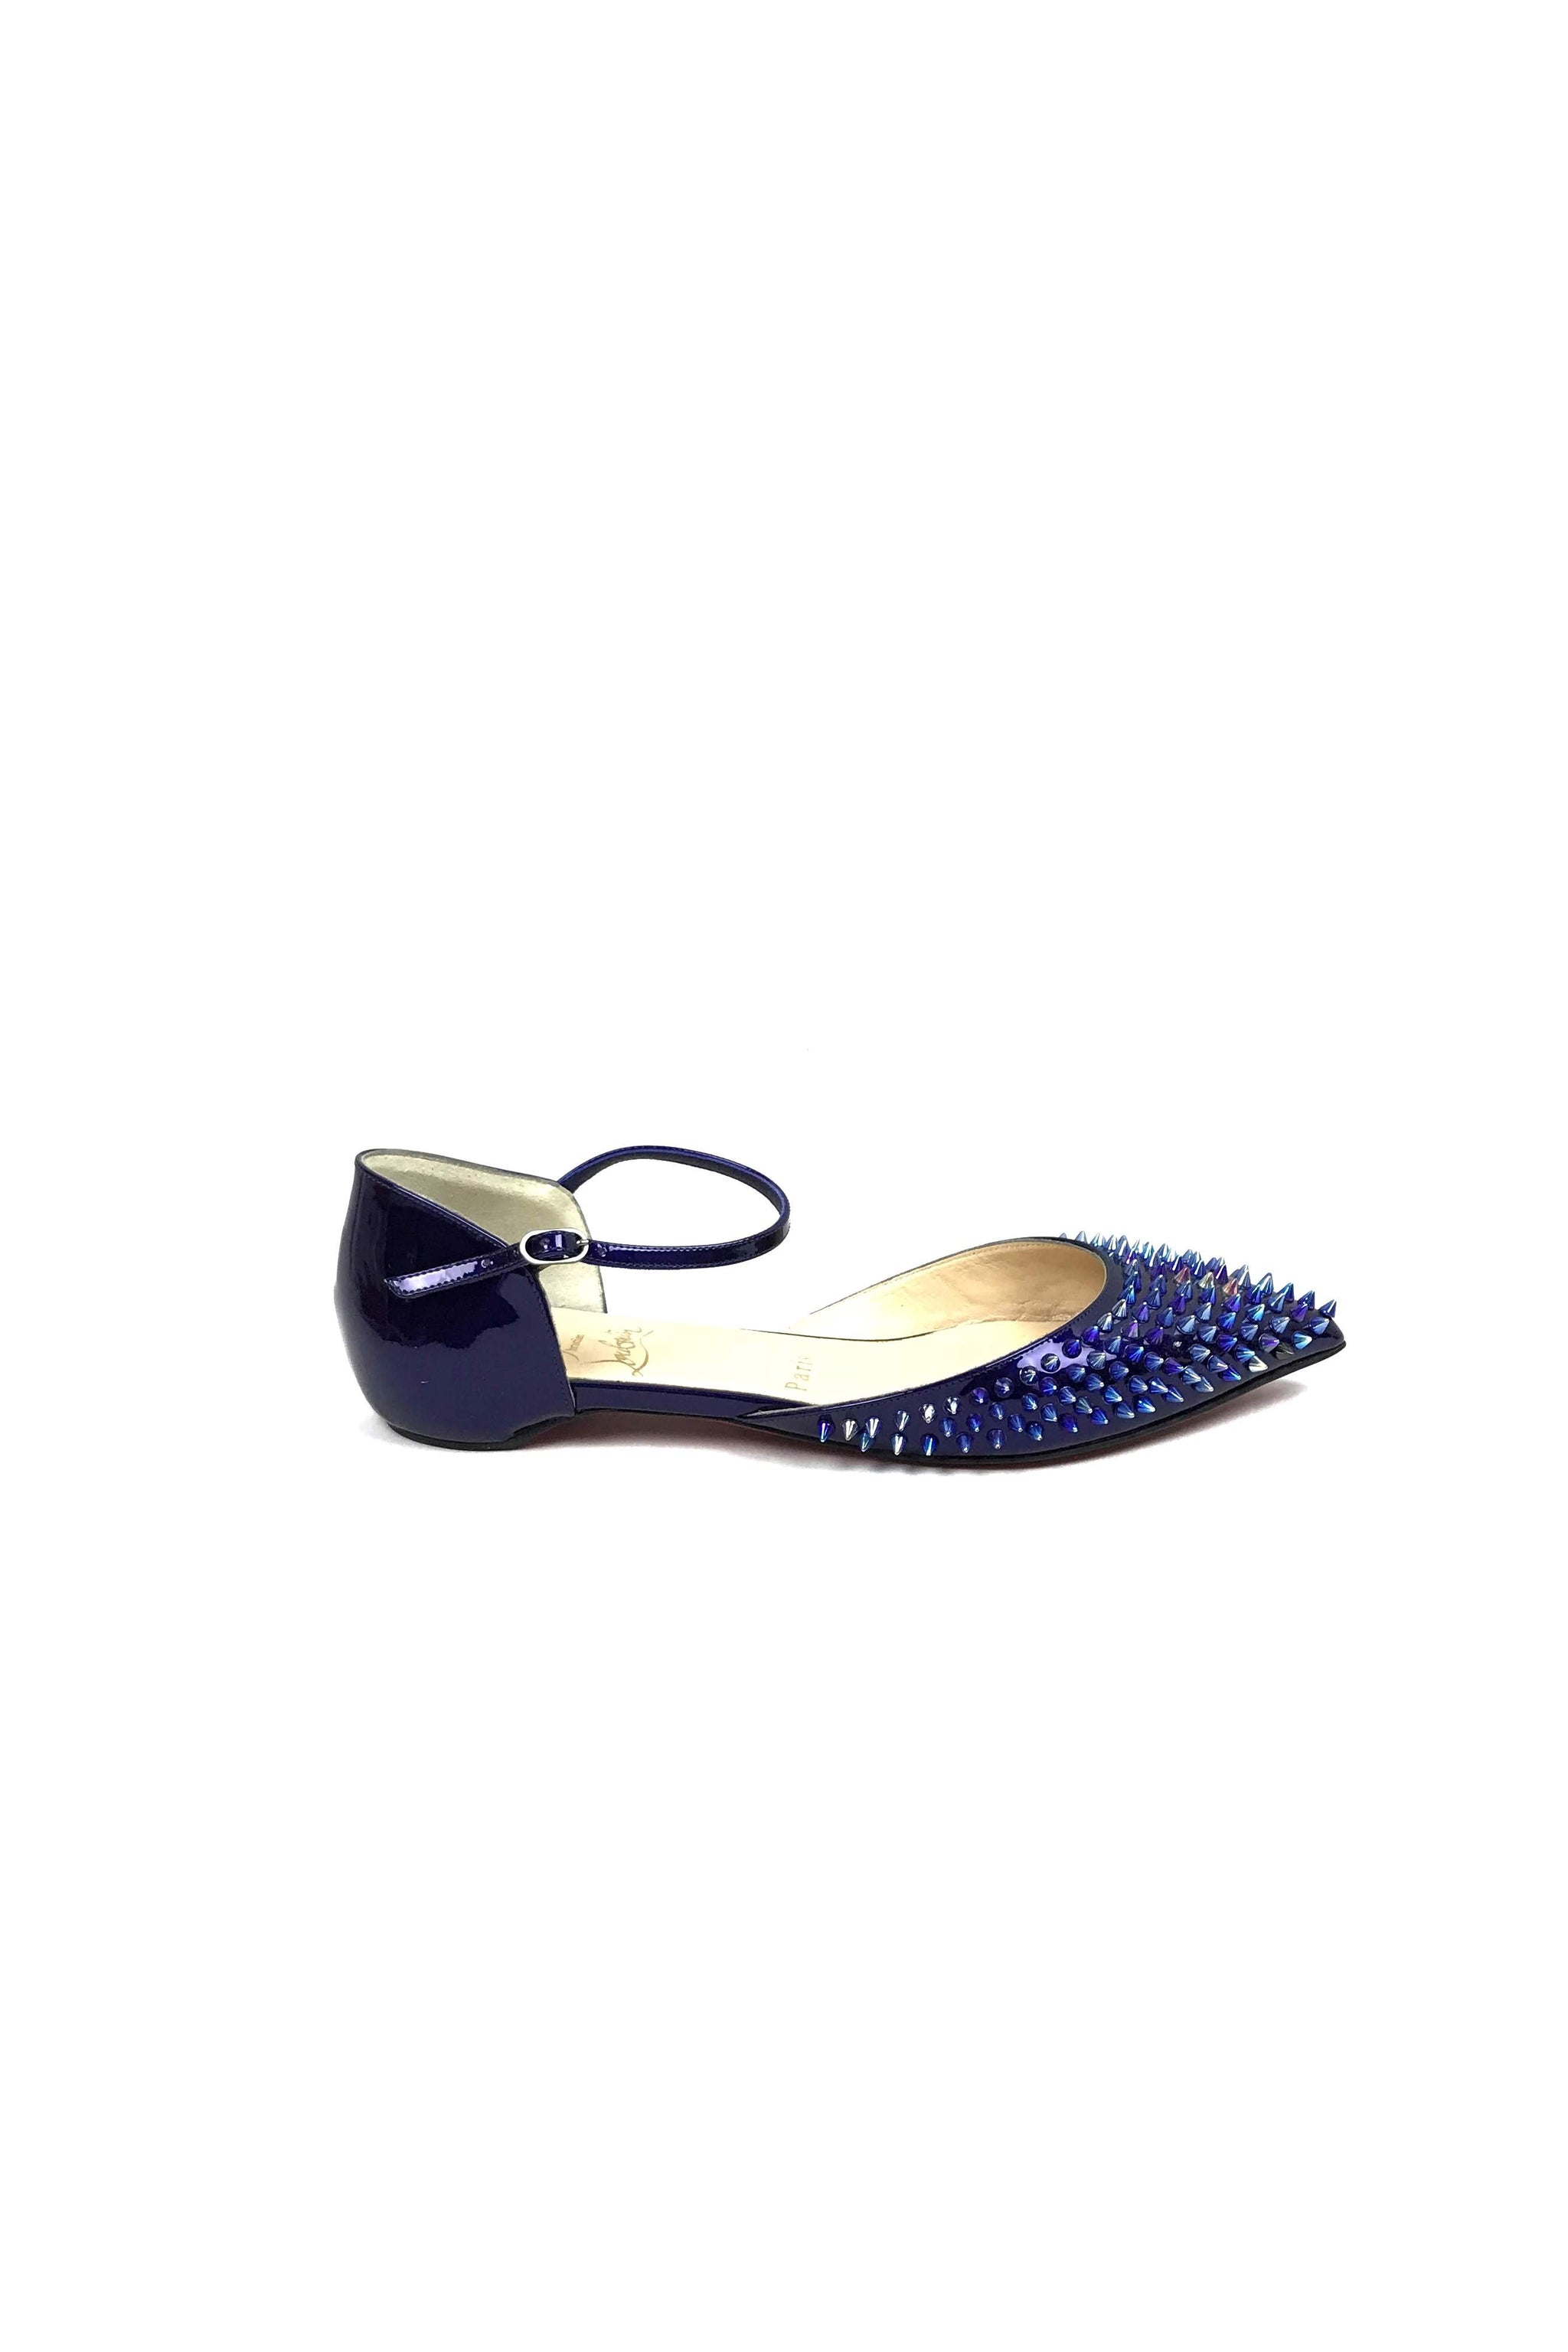 detailed look 6c416 83097 Baila Spike Glassy Patent Leather Electric Violet Iridescent Flat